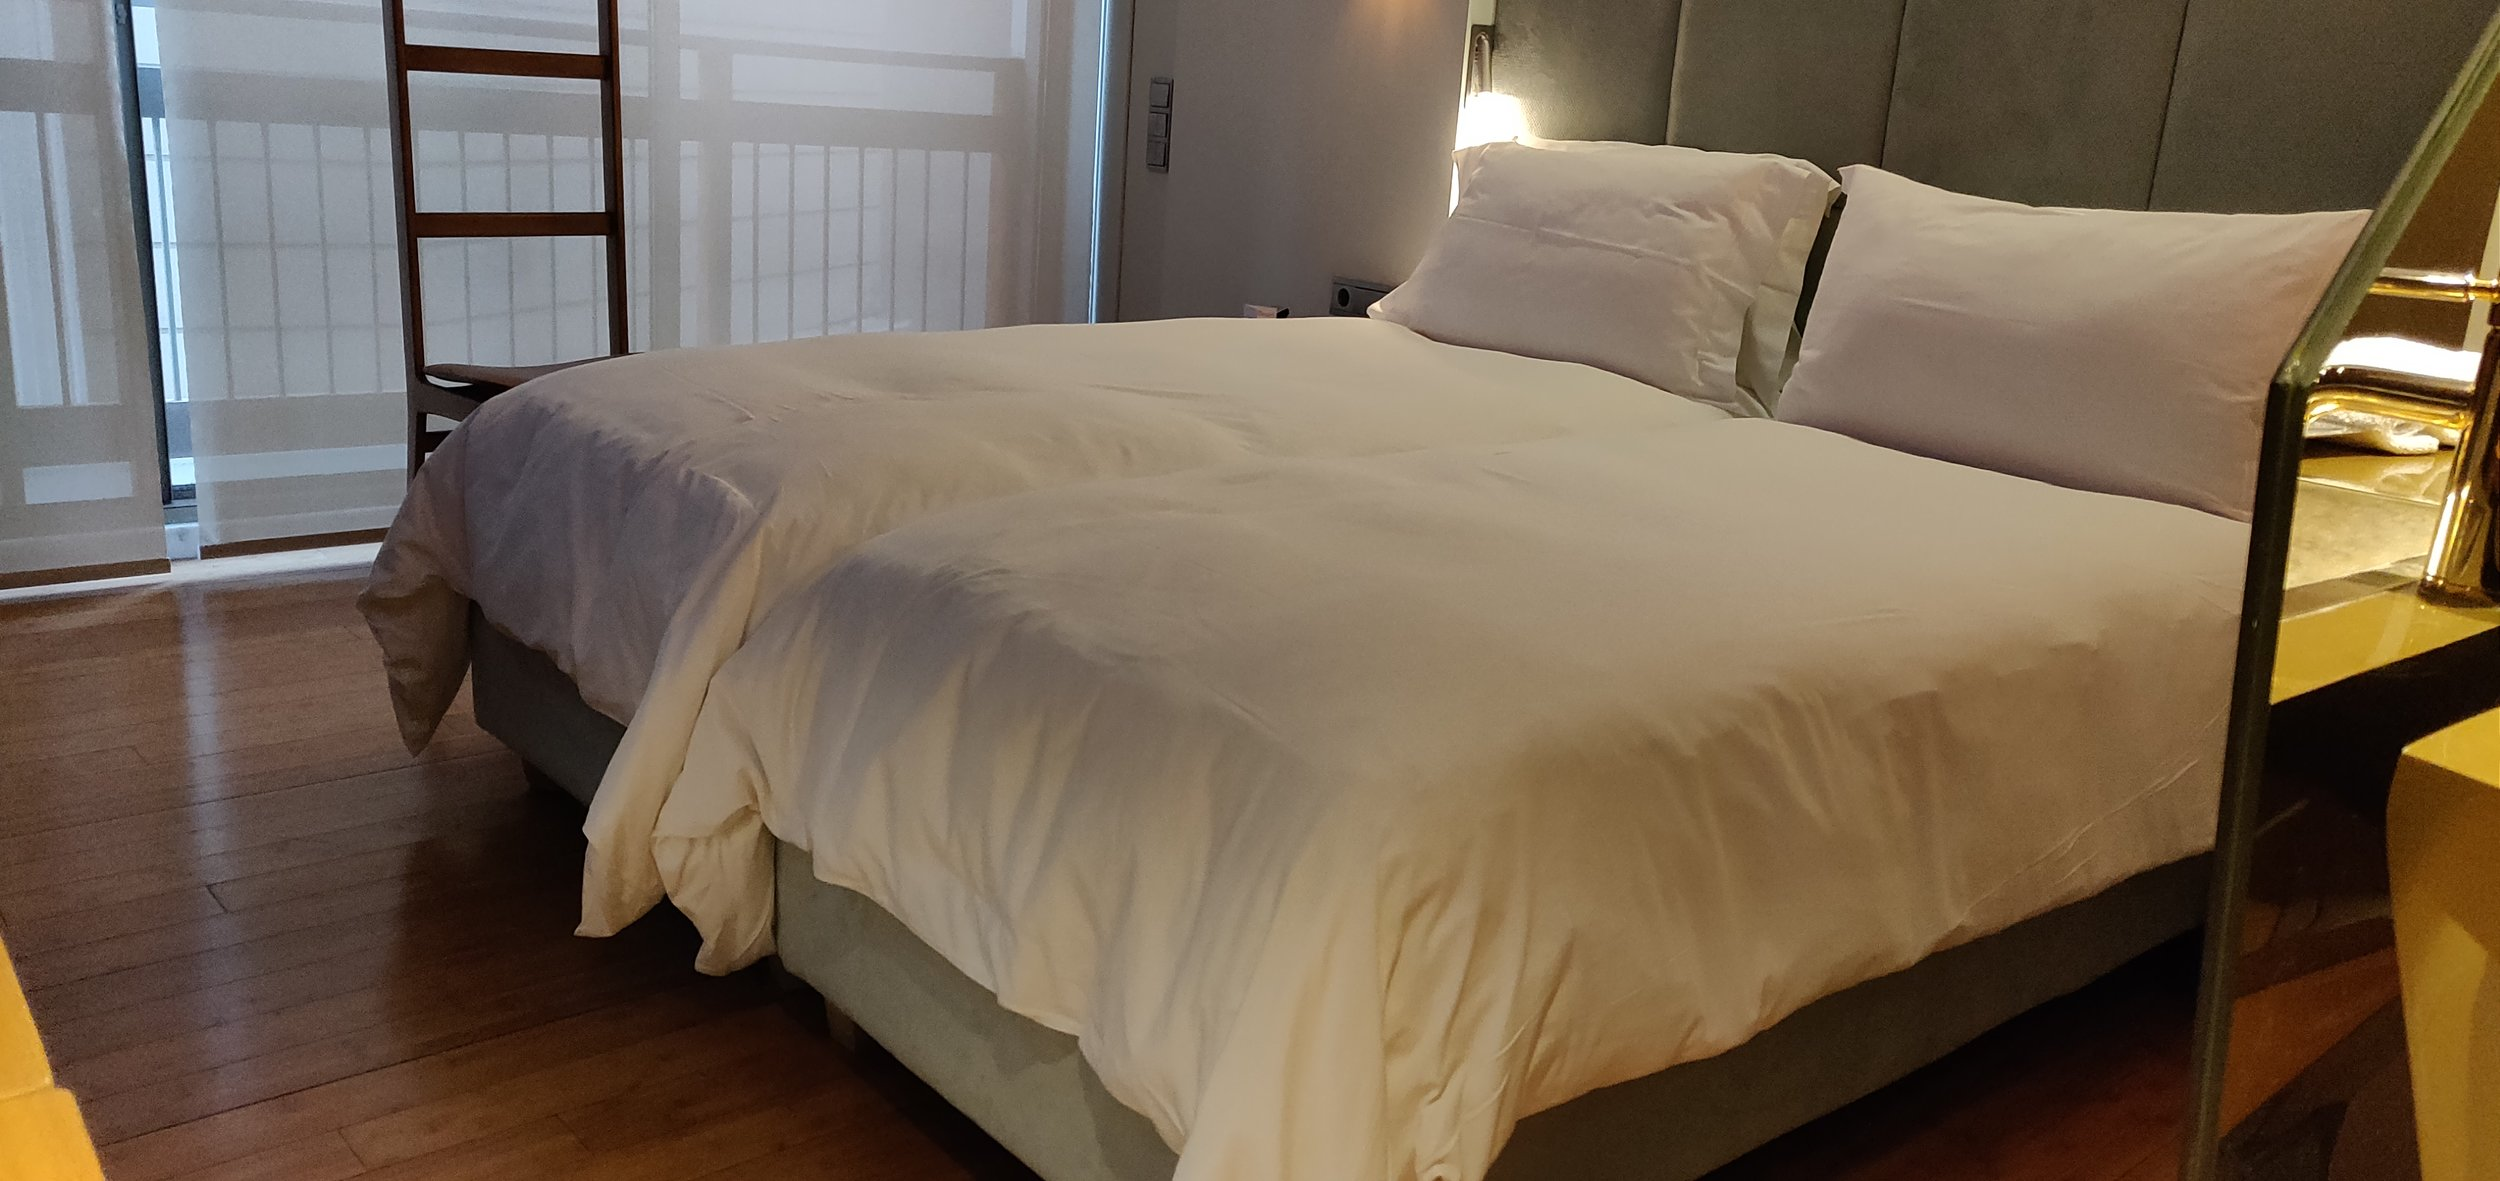 NEW Hotel, Athens - Bed